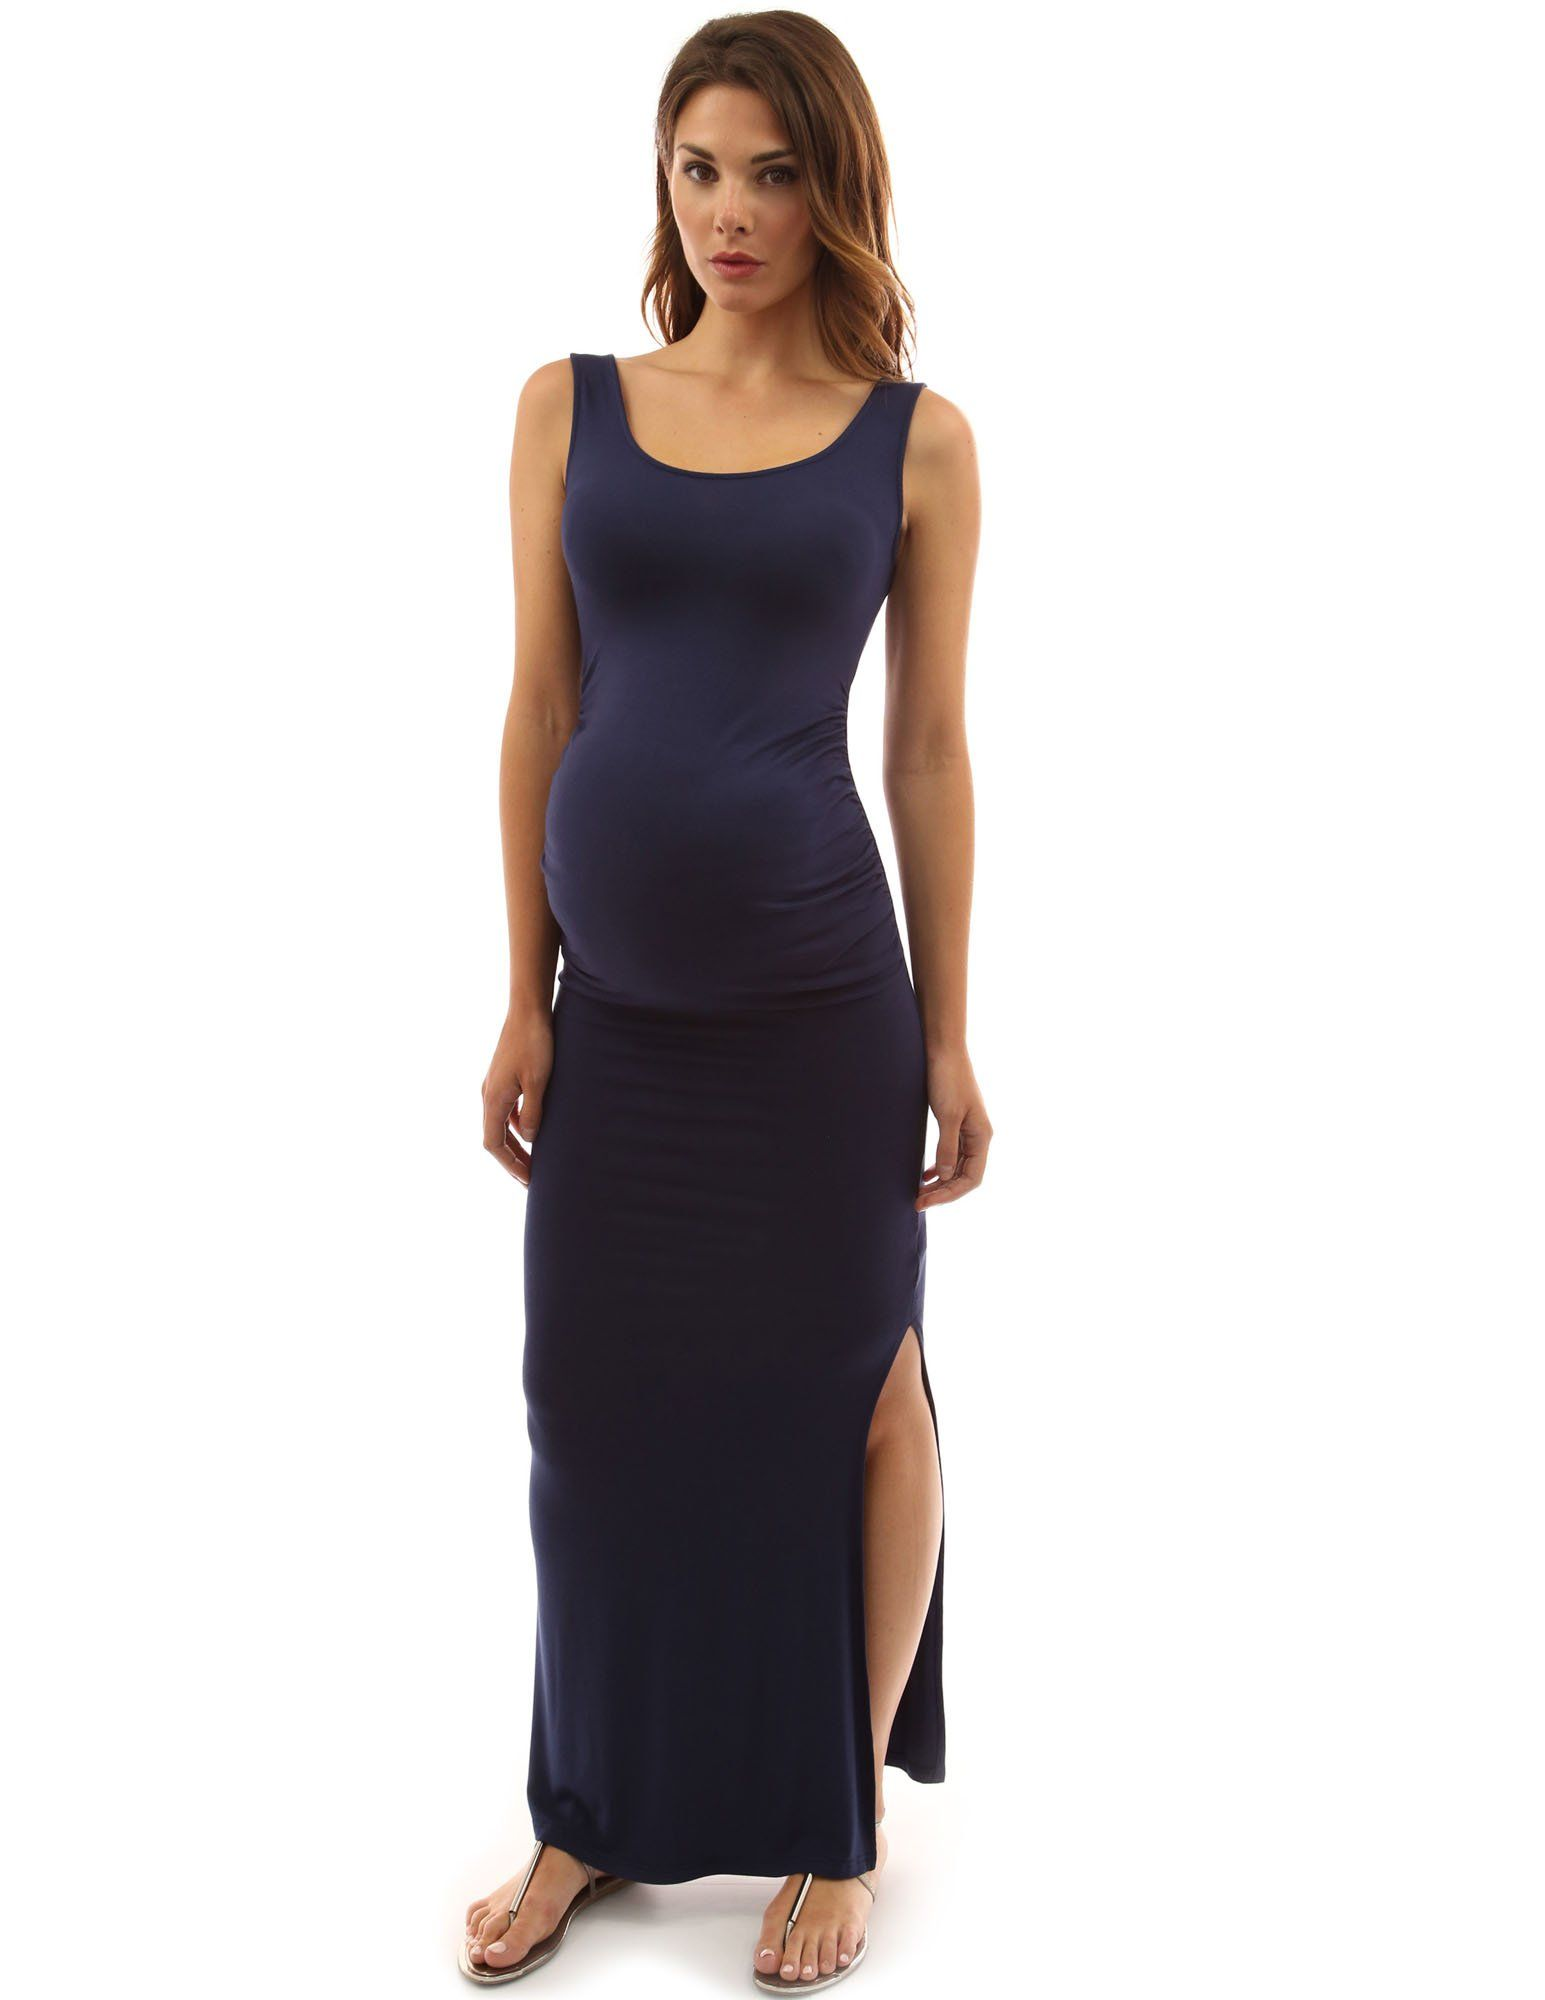 c5c02628ead31 Maternity Outfits - sensible maternity maxi dress   PattyBoutik Mama  TieDye Solid Scoop Neck Sleeveless Maxi Dress Navy Blue XLarge     You can  learn more ...